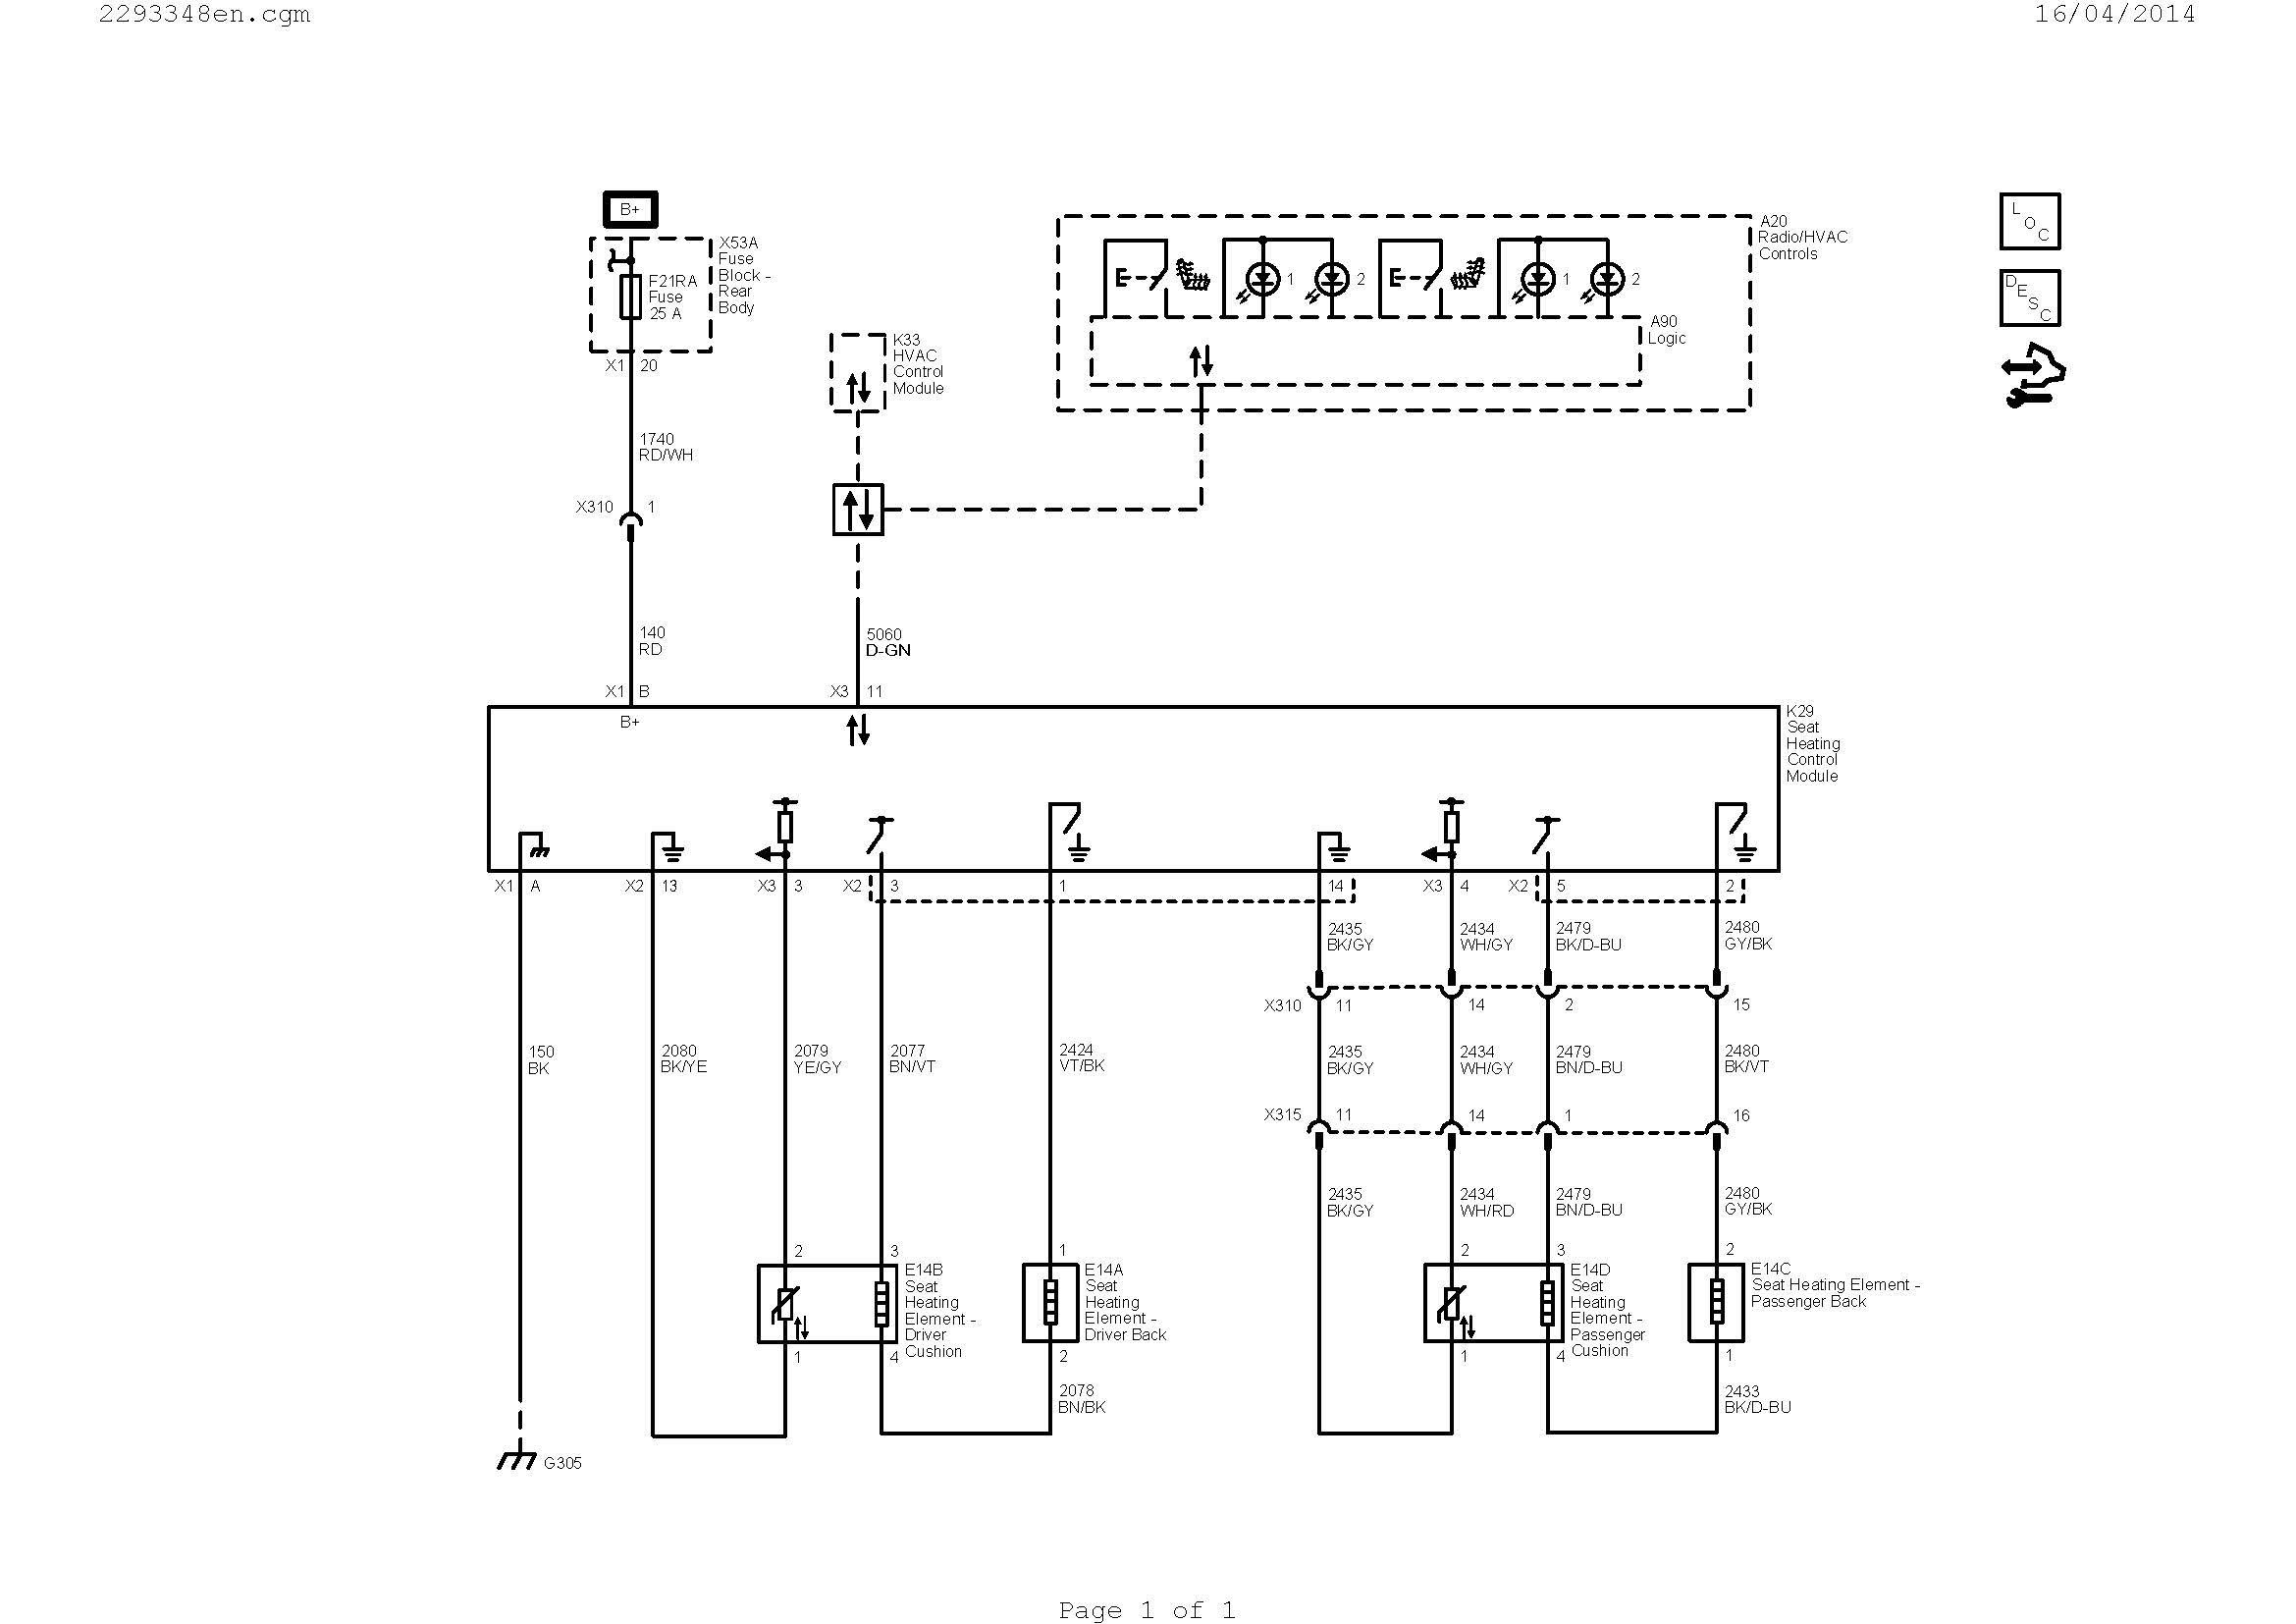 reznor heater wiring diagram Collection-fan wiring diagram Collection Wiring Diagram For Changeover Relay Inspirationa Wiring Diagram Ac Valid Hvac DOWNLOAD Wiring Diagram 20-l